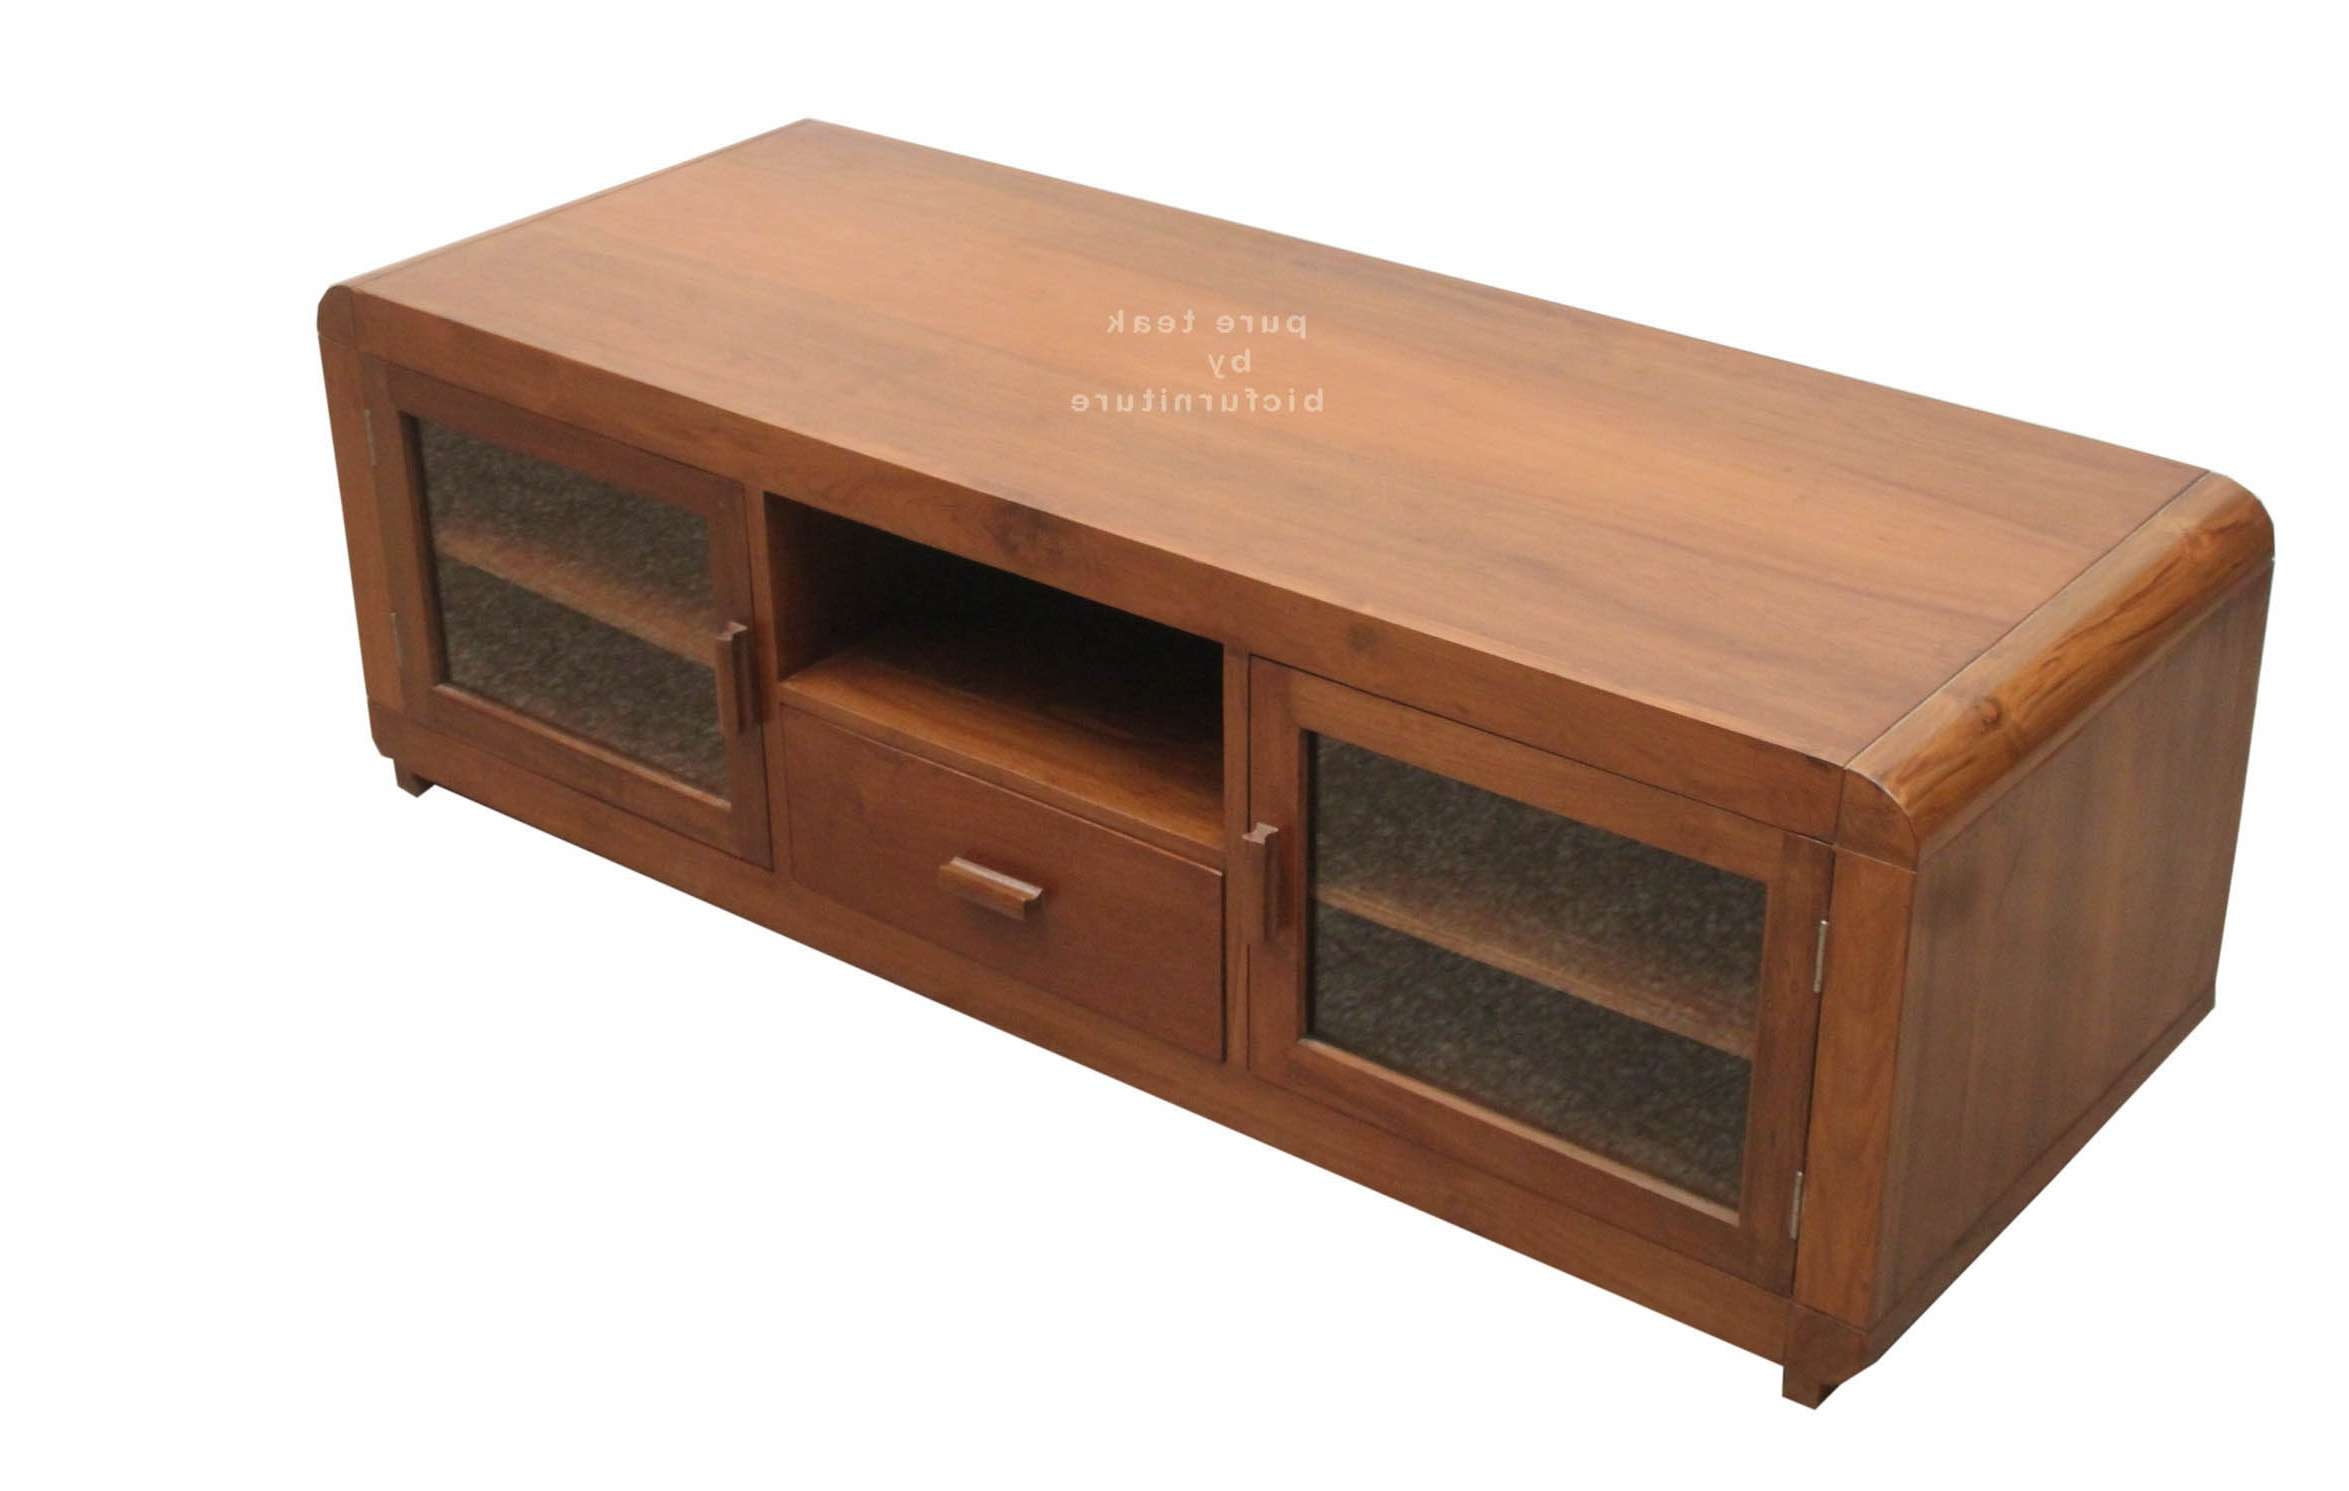 Tv Stand With Rounded Edges – Round Designs Pertaining To Tv Stands With Rounded Corners (View 14 of 15)